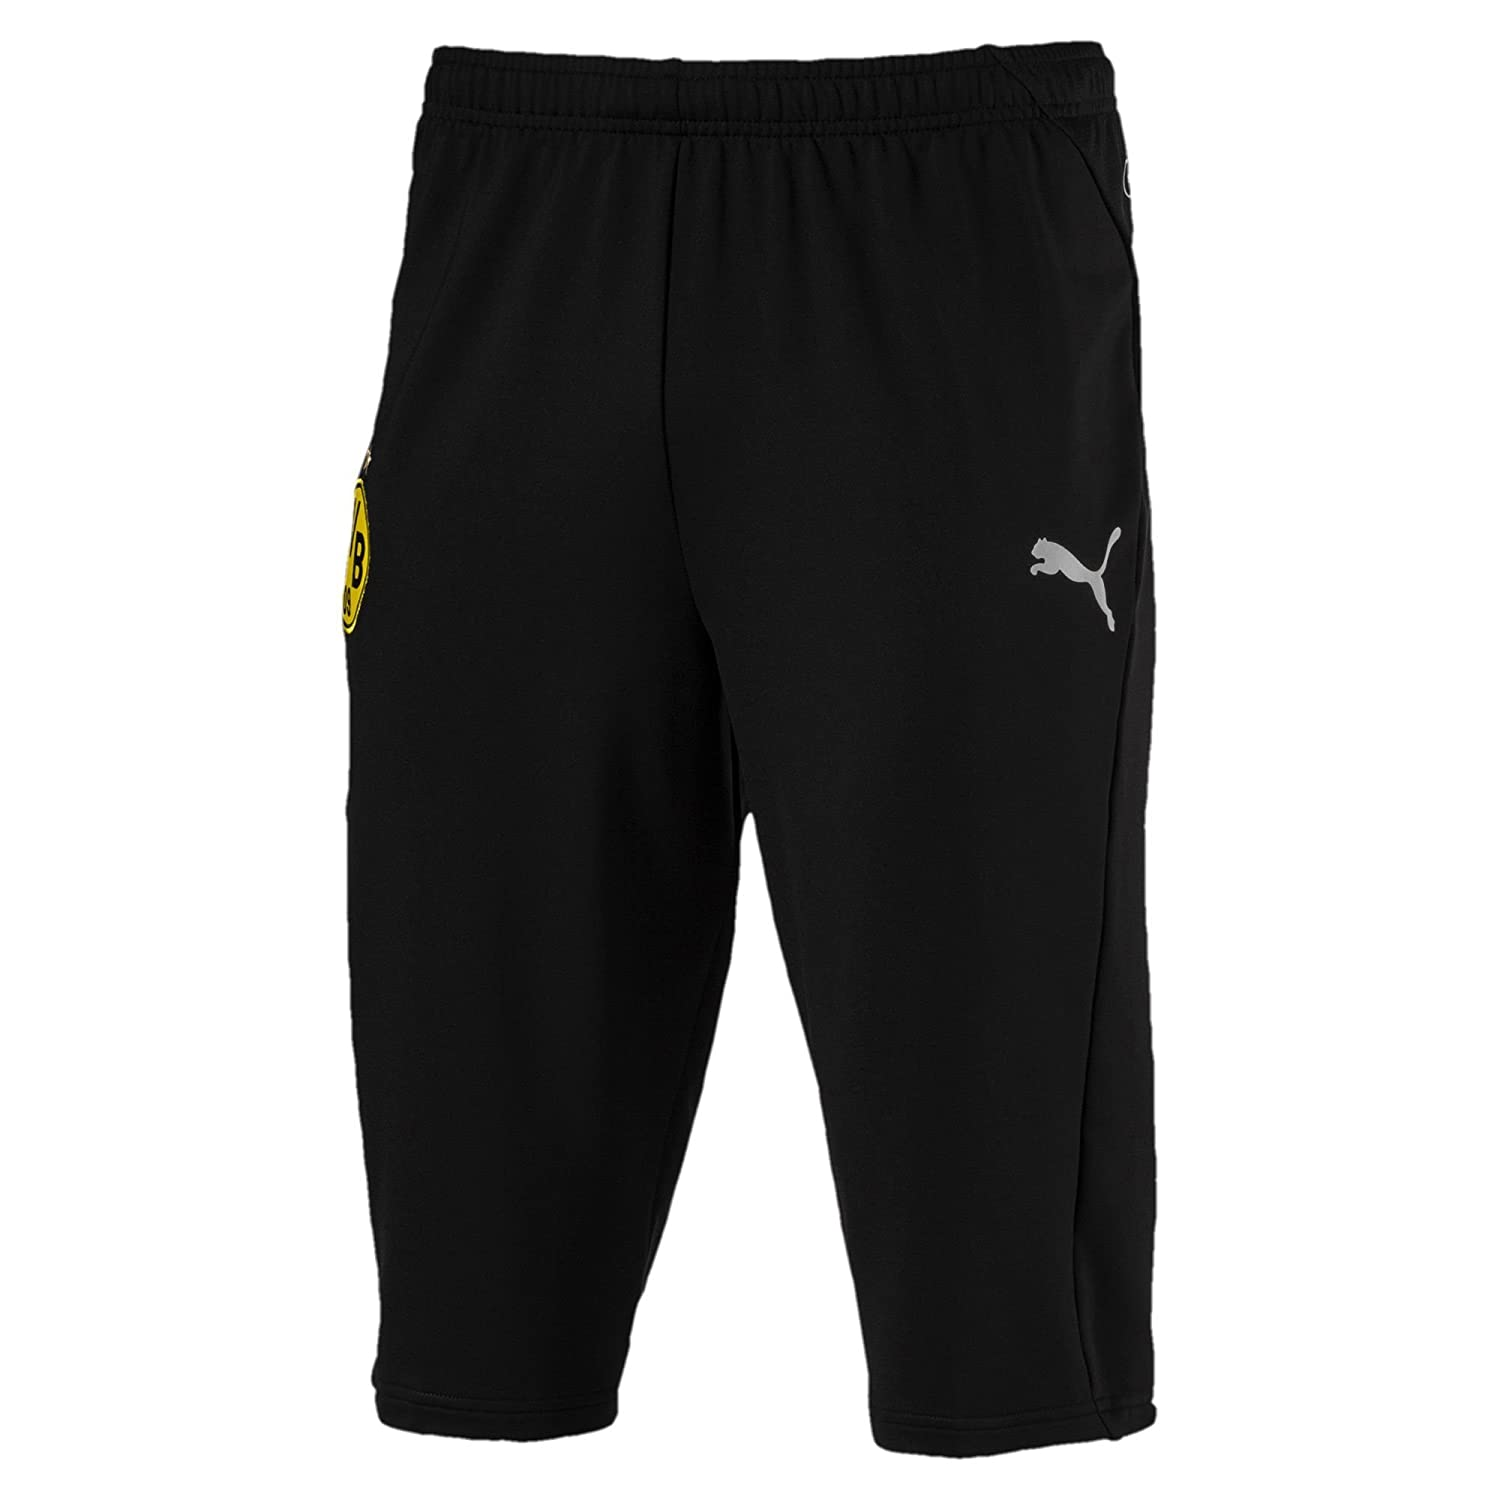 Puma Herren BVB 3 4 Training Pants Without Pockets Hose